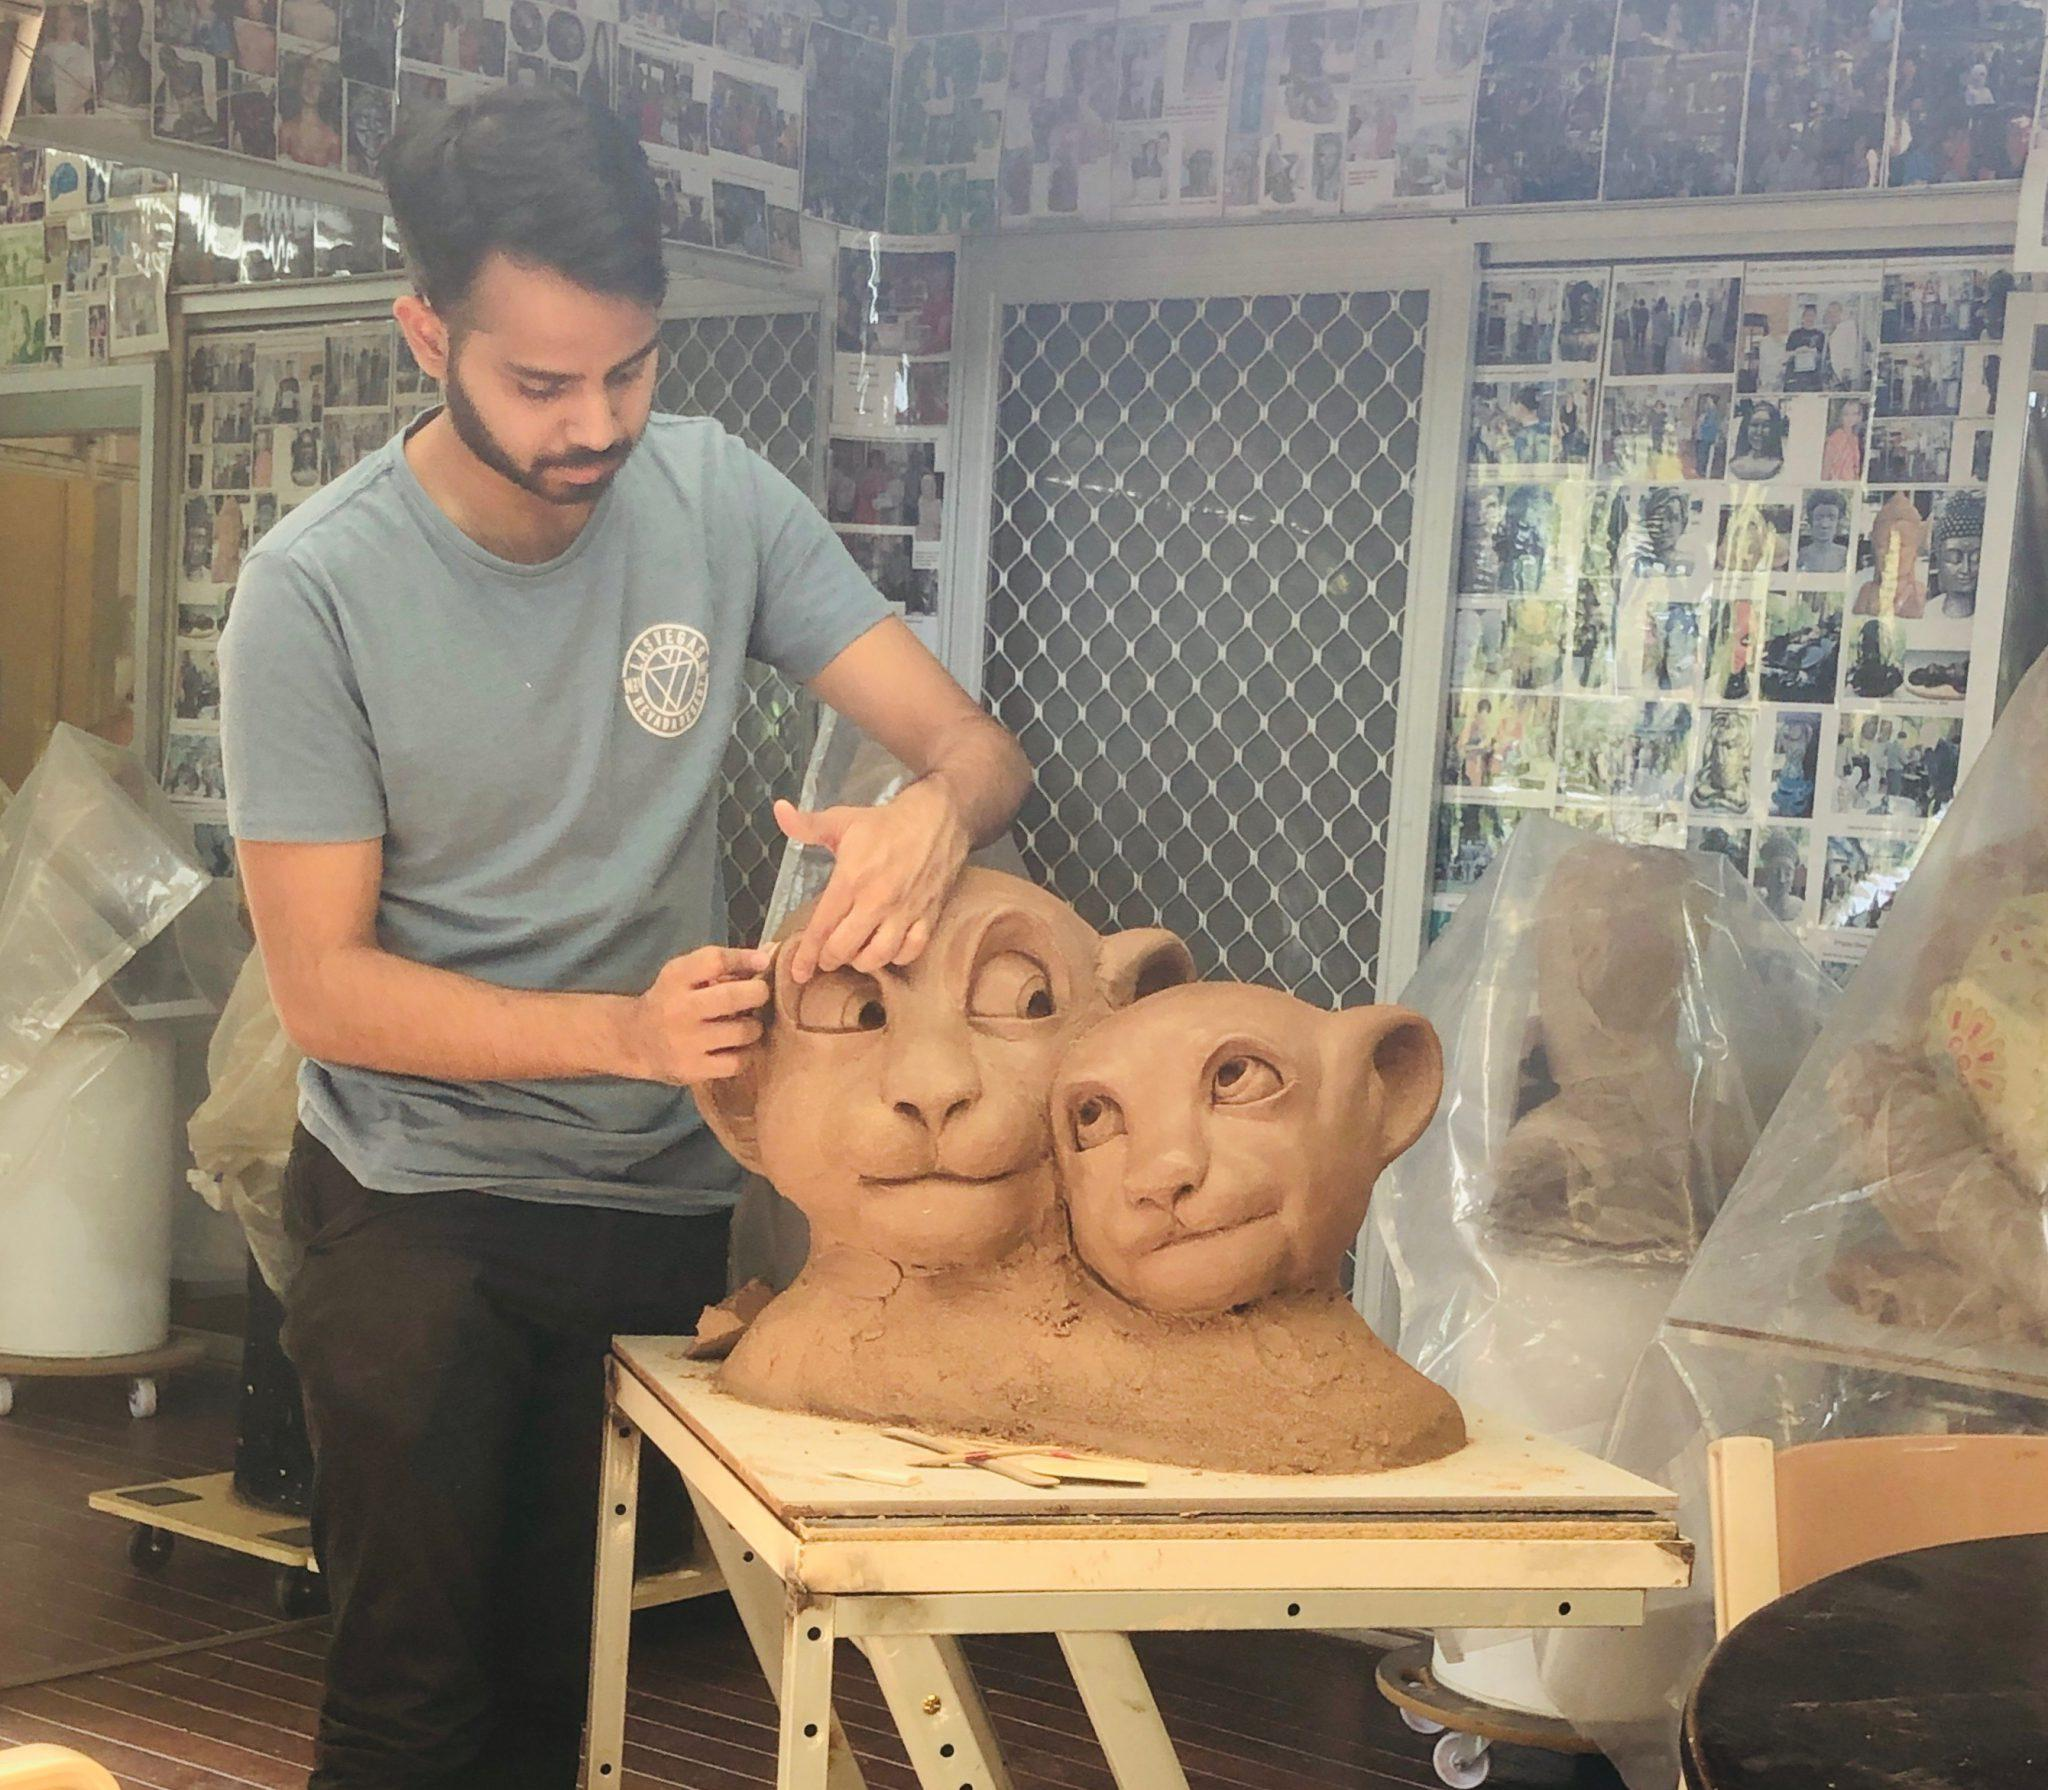 Brother's wedding clay gift in progressing